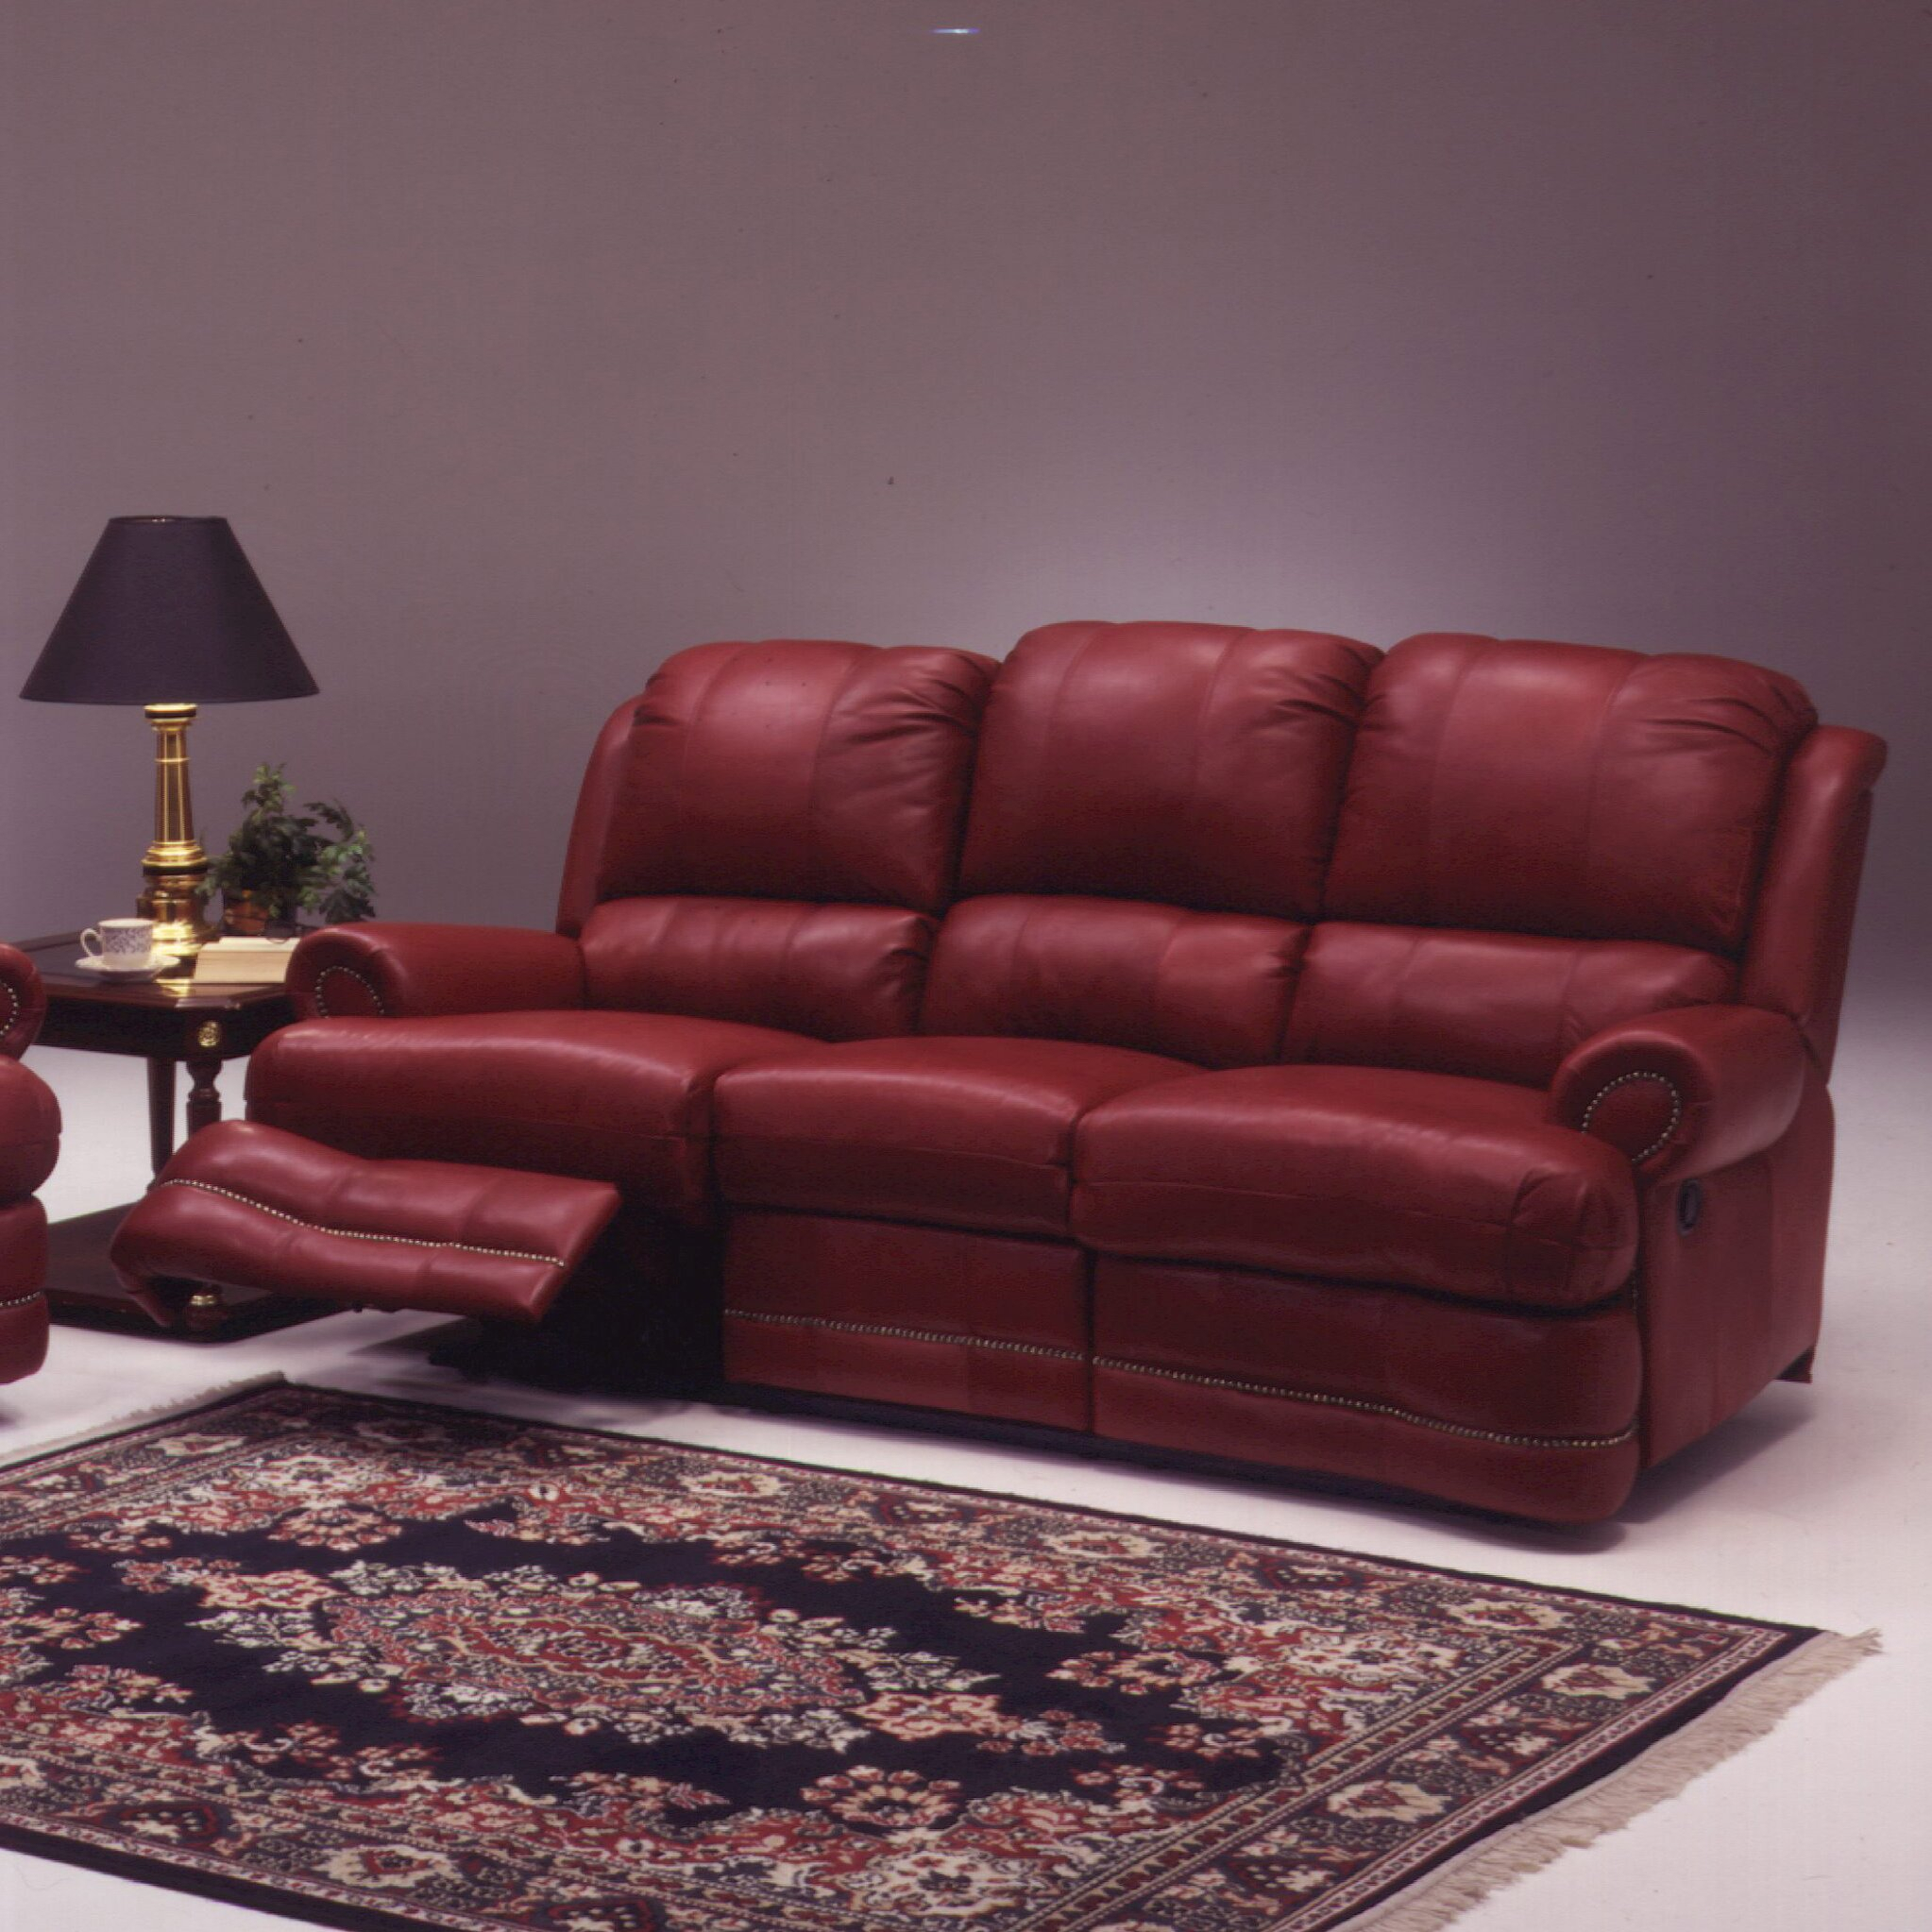 Omnia Leather Morgan 4 Seat Sofa Leather Living Room Set Throughout 4 Seat Leather Sofas (View 6 of 15)